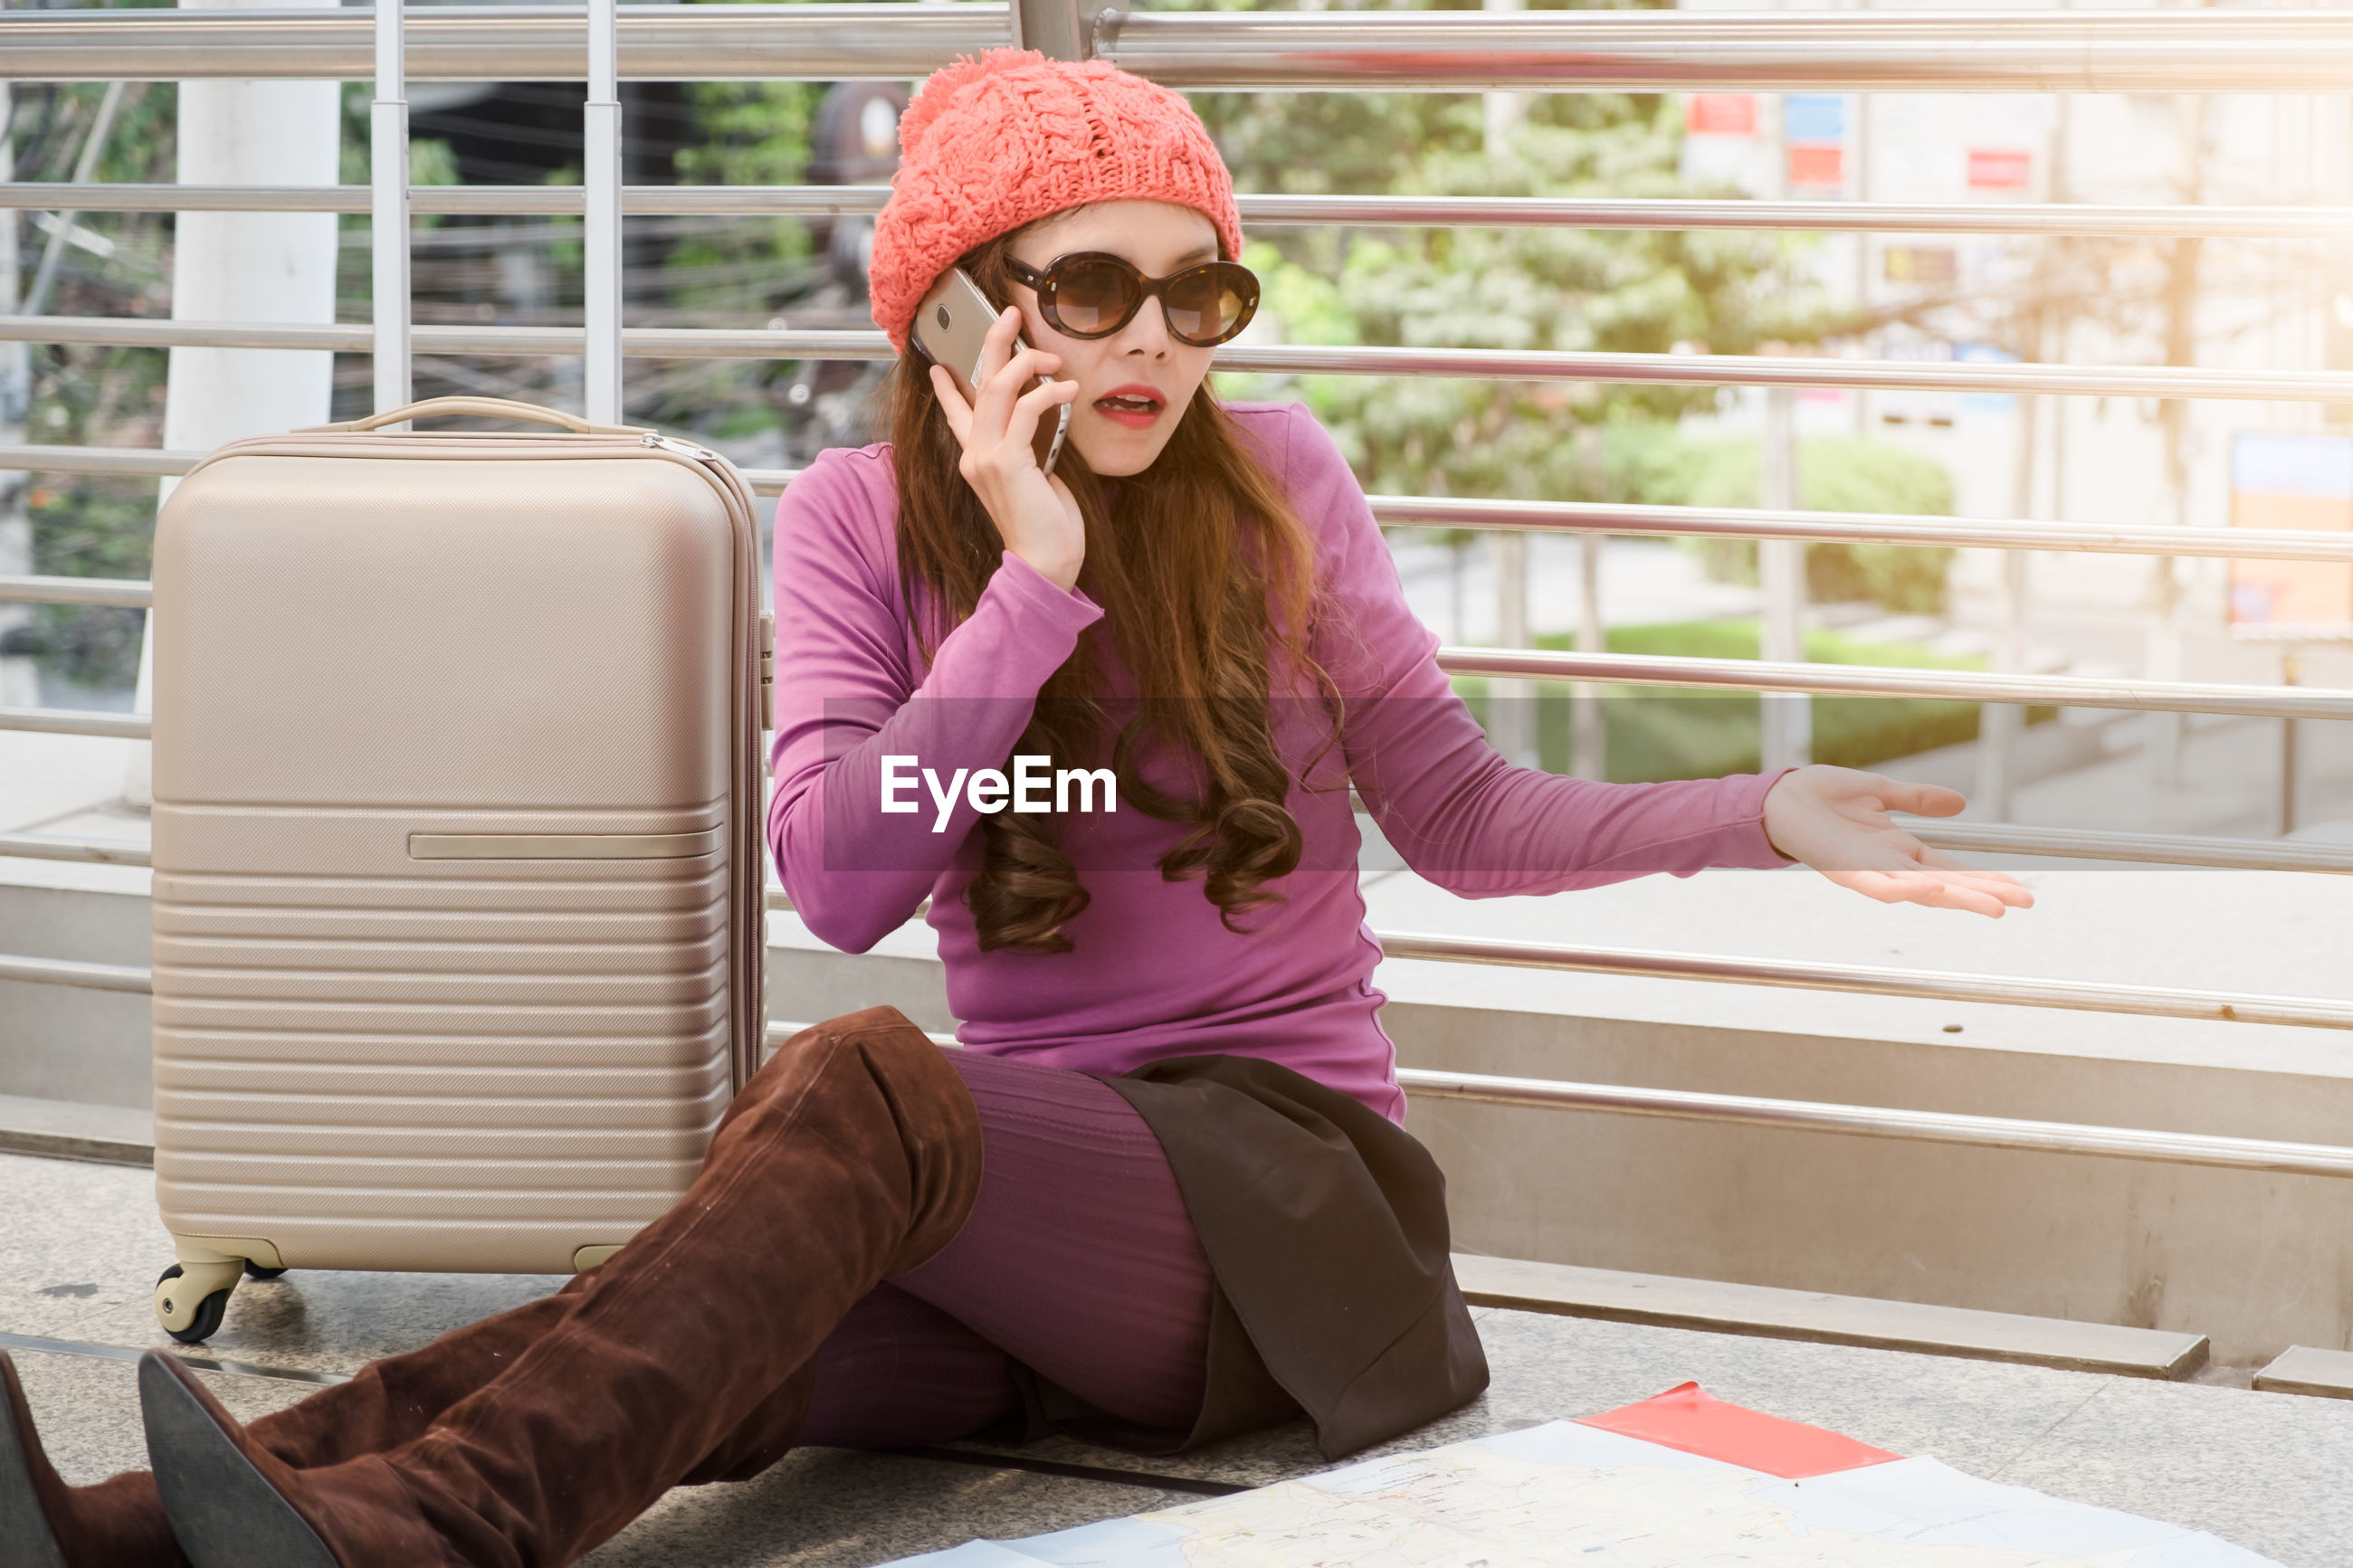 Woman talking on mobile phone while sitting with suitcase outdoors